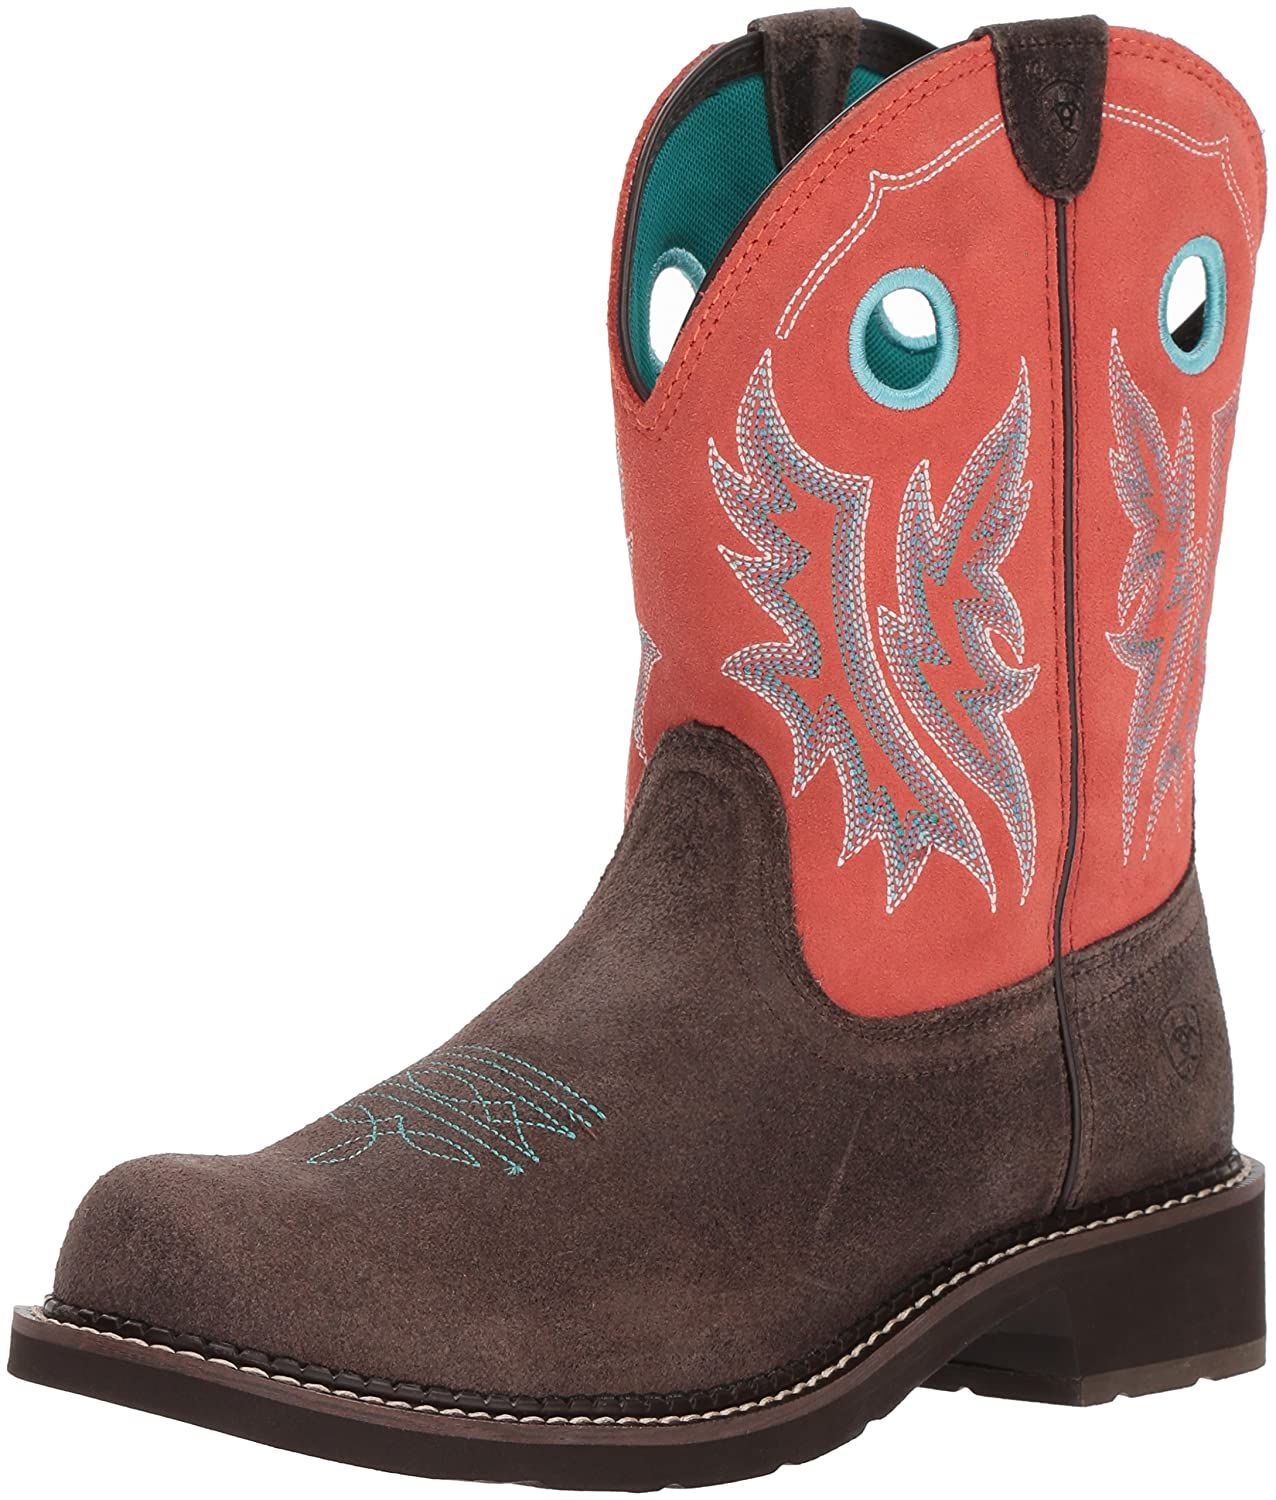 Ariat Women's Fatbaby Heritage Cowgirl Western Boot B076MCSFJ8 6.5 B(M) US|Chocolate/Coral